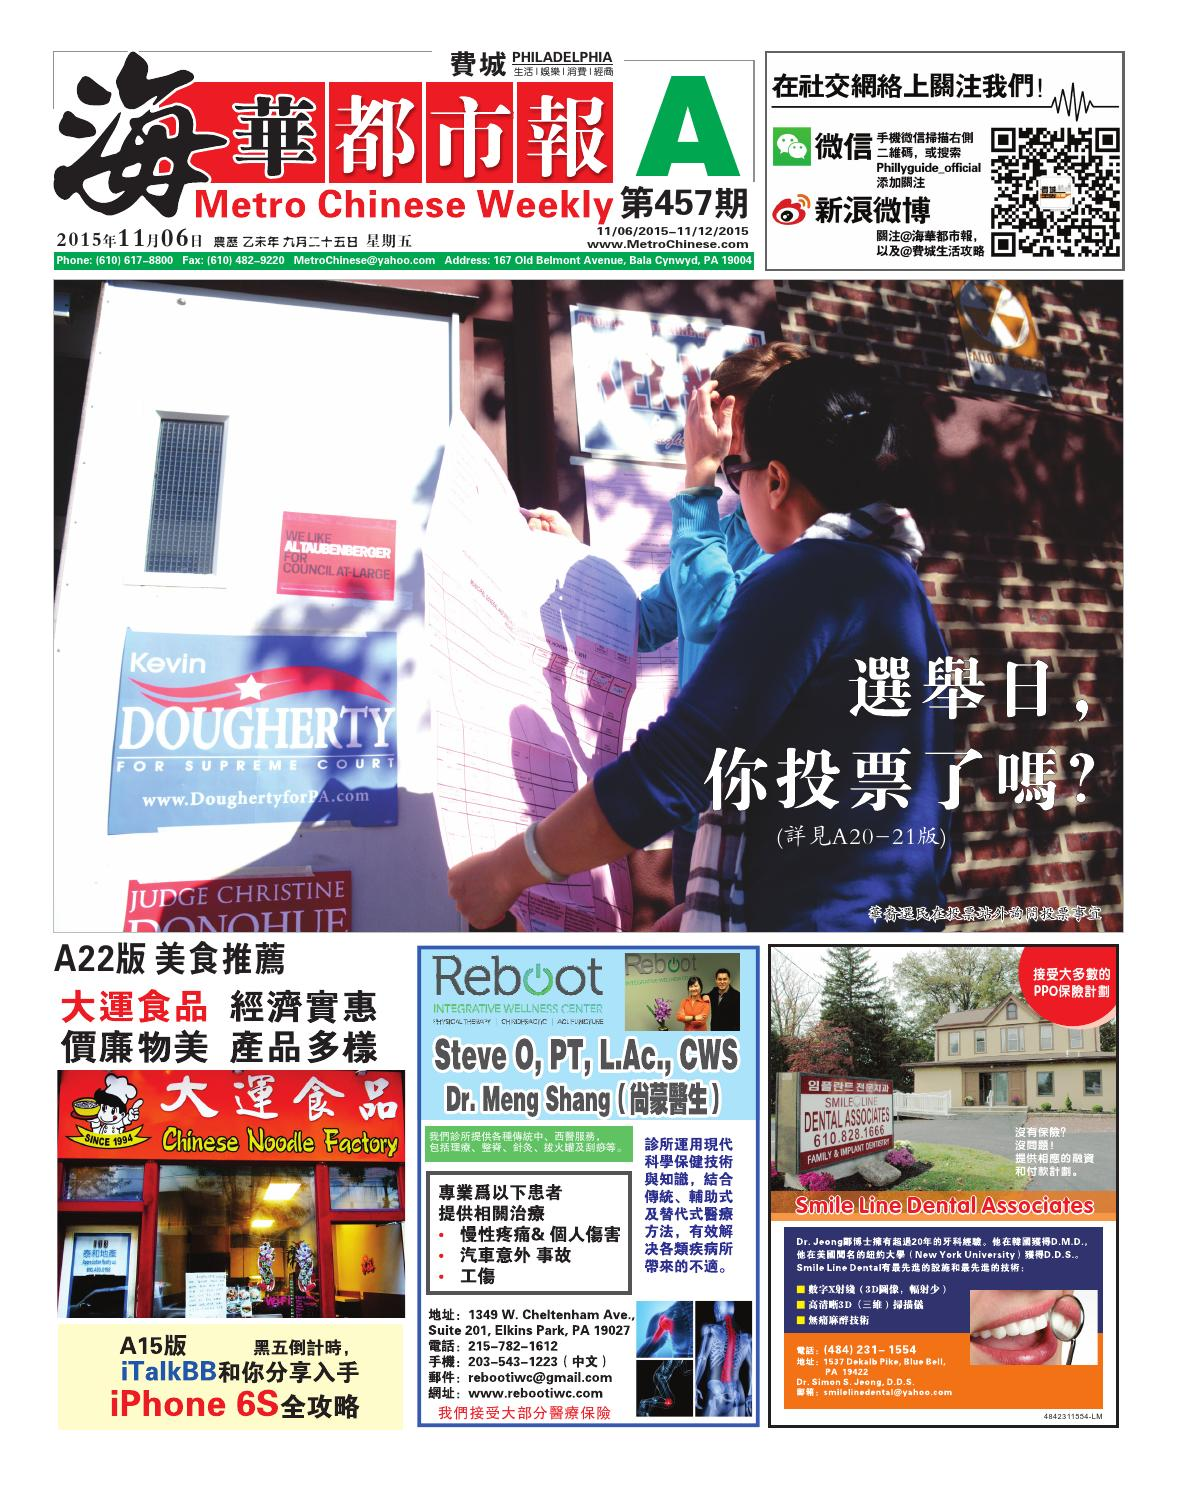 Metro Chinese Weekly | 海华都市报 #457 A by Metro Chinese Weekly - issuu